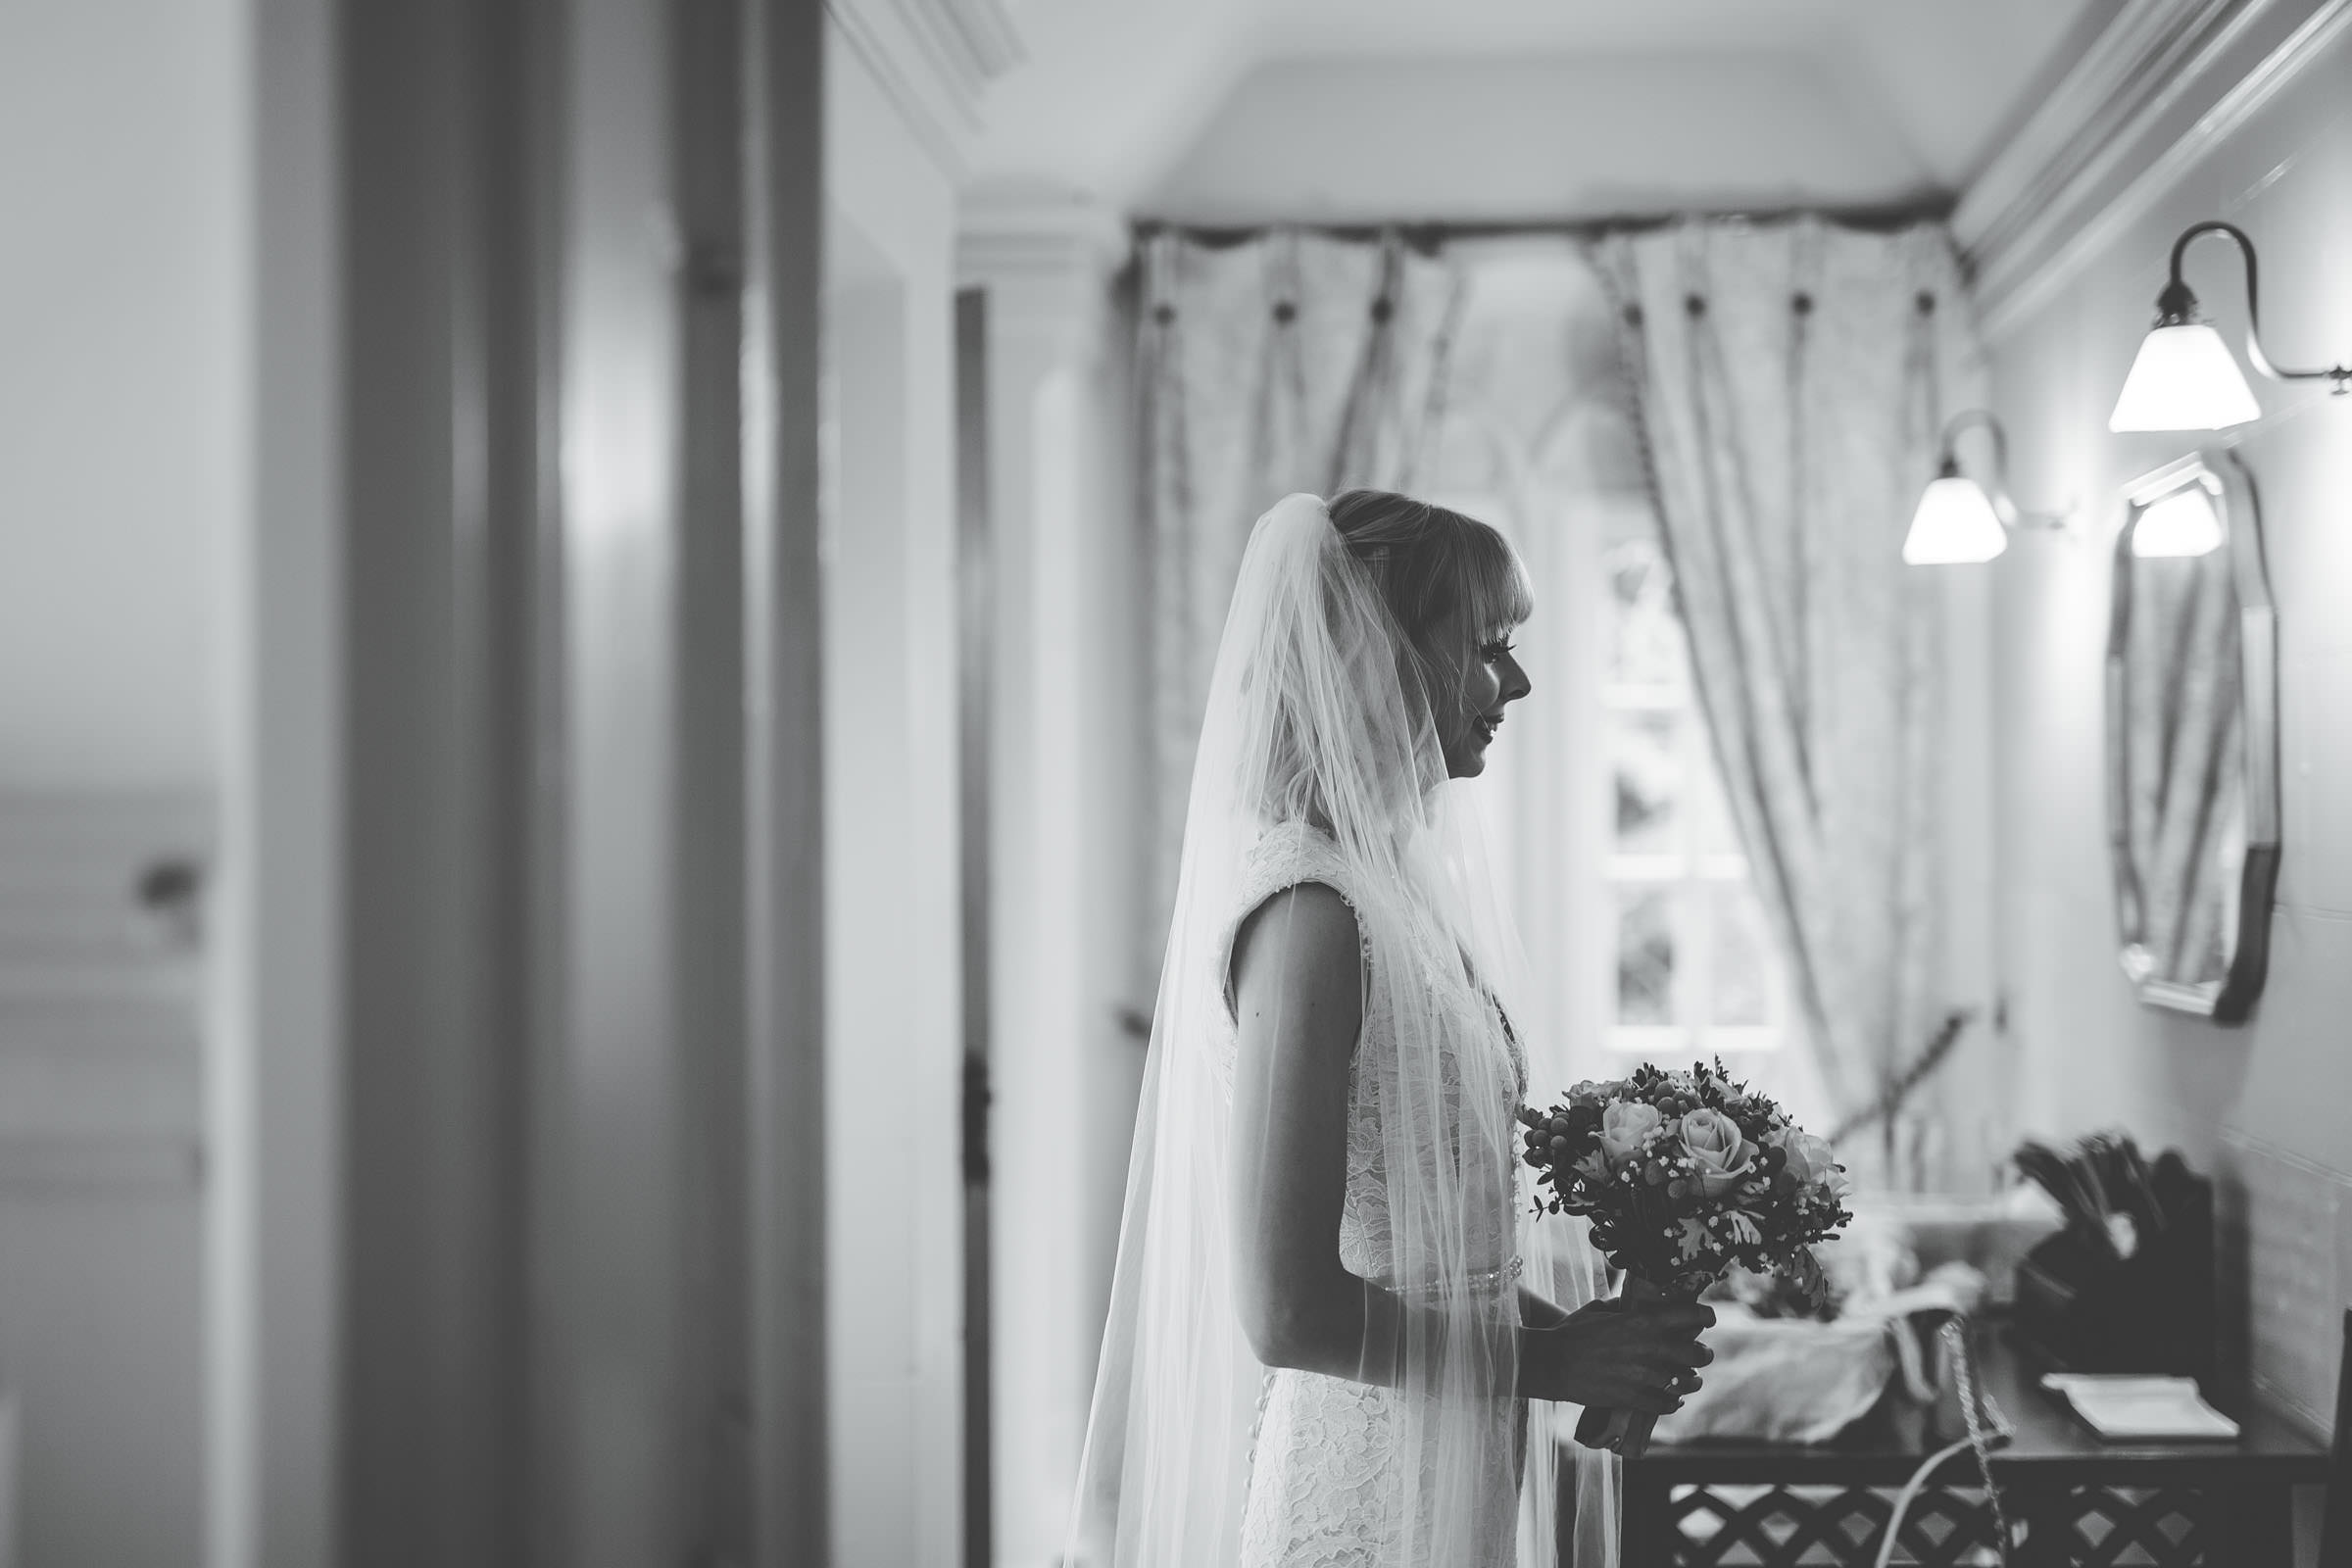 a quiet moment - bride at Combermere abbey wedding